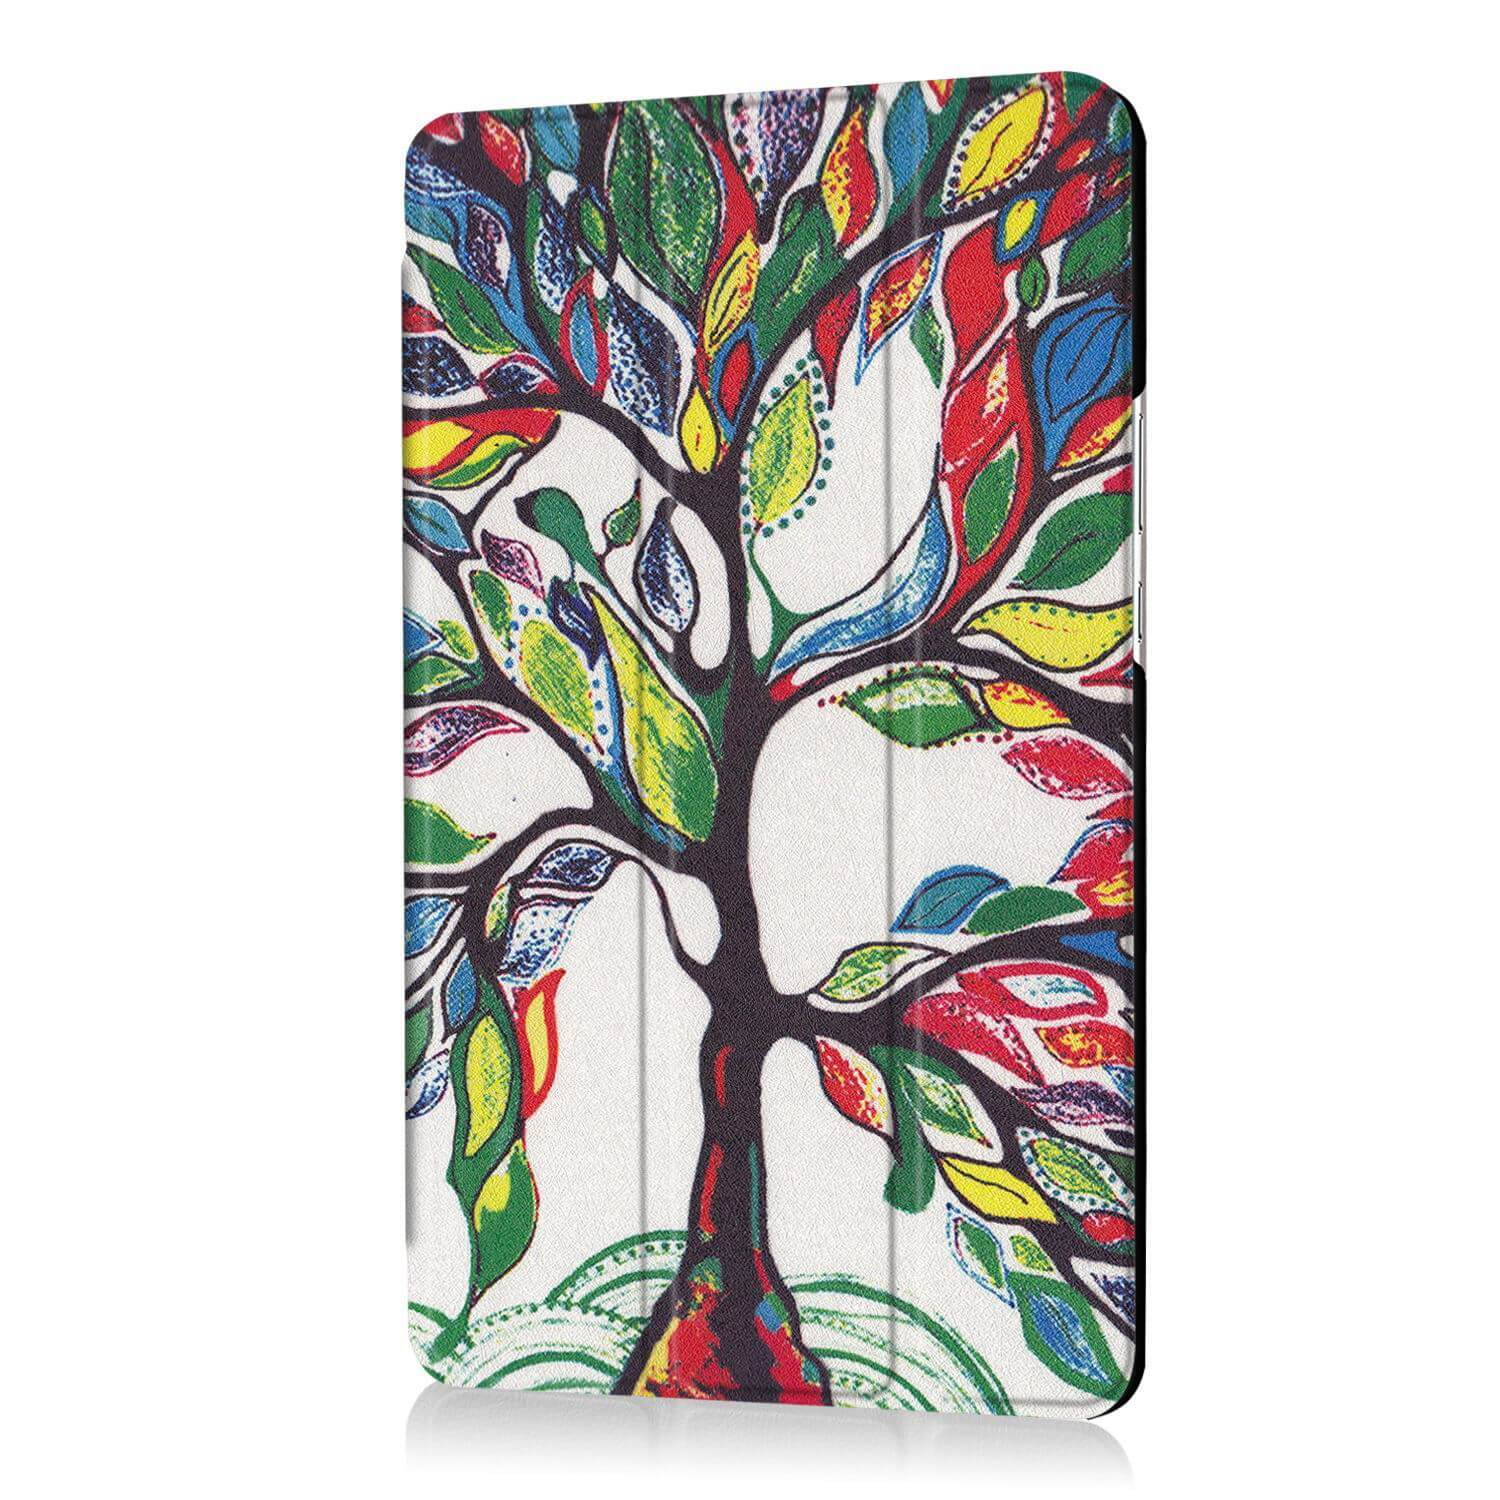 mediapad m3 bright painted case with pictures of paris butterflies and other tree: